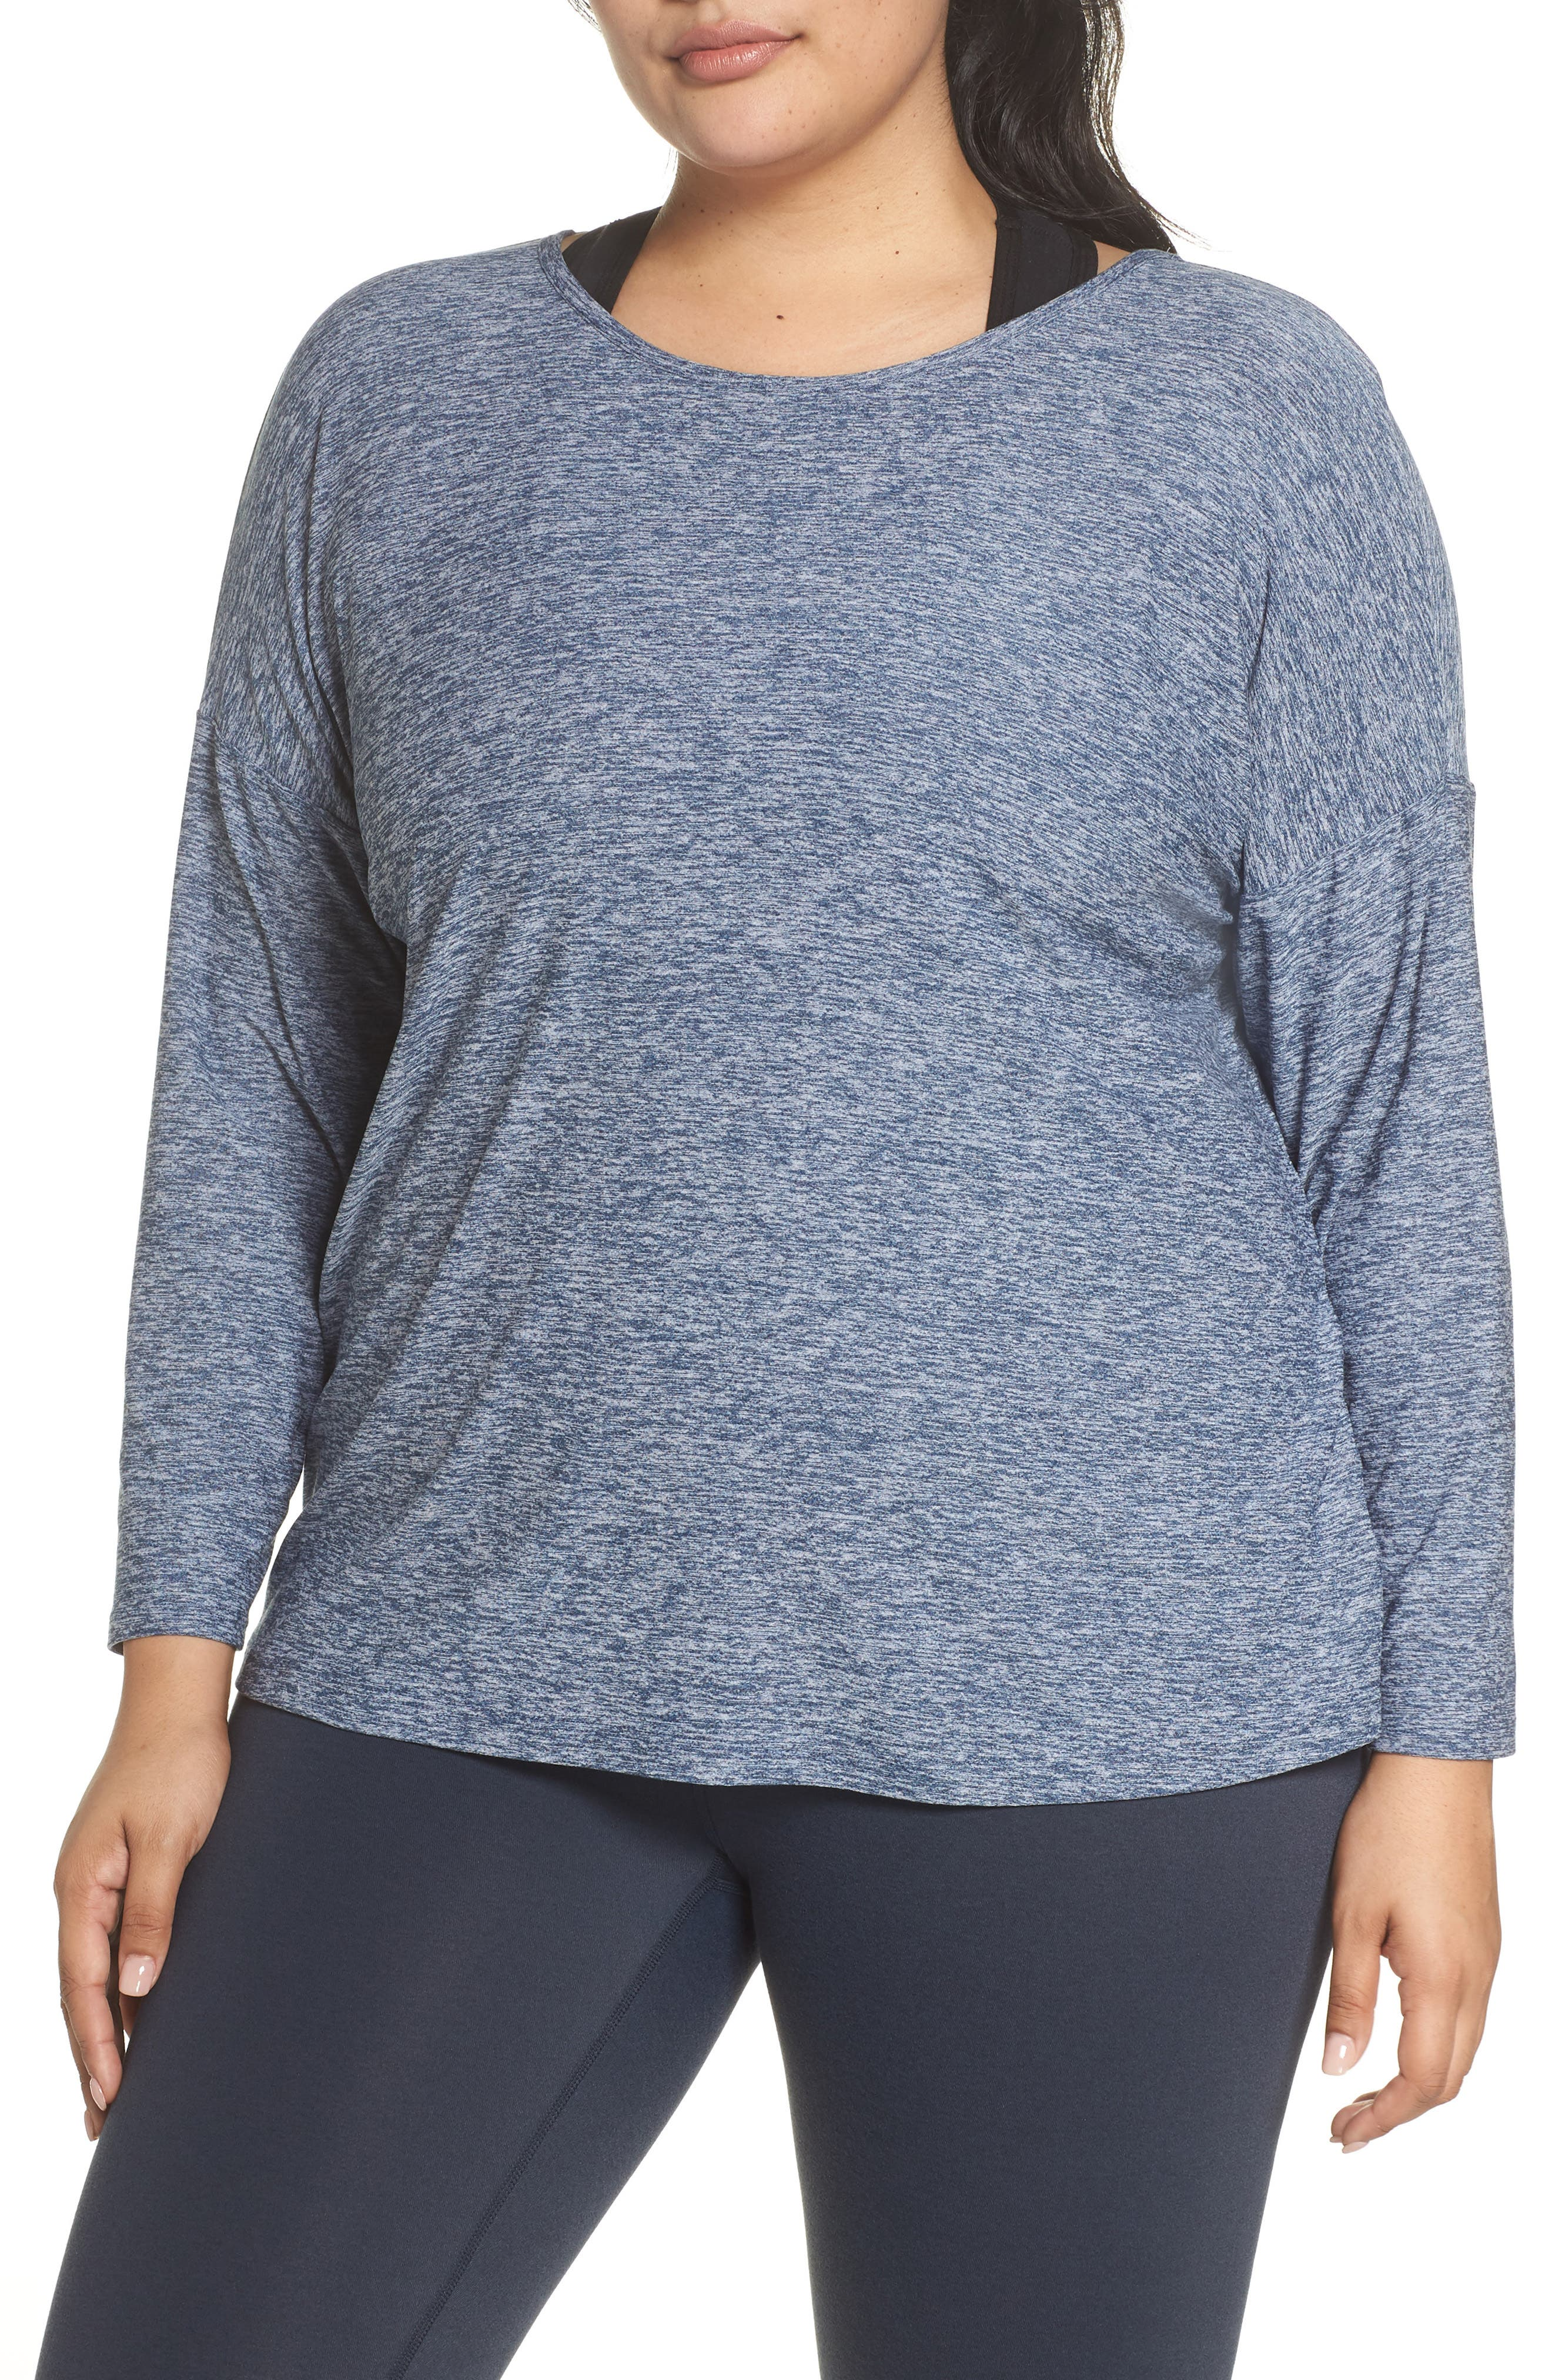 Weekend Traveler Pullover,                             Main thumbnail 1, color,                             White/ Outlaw Navy